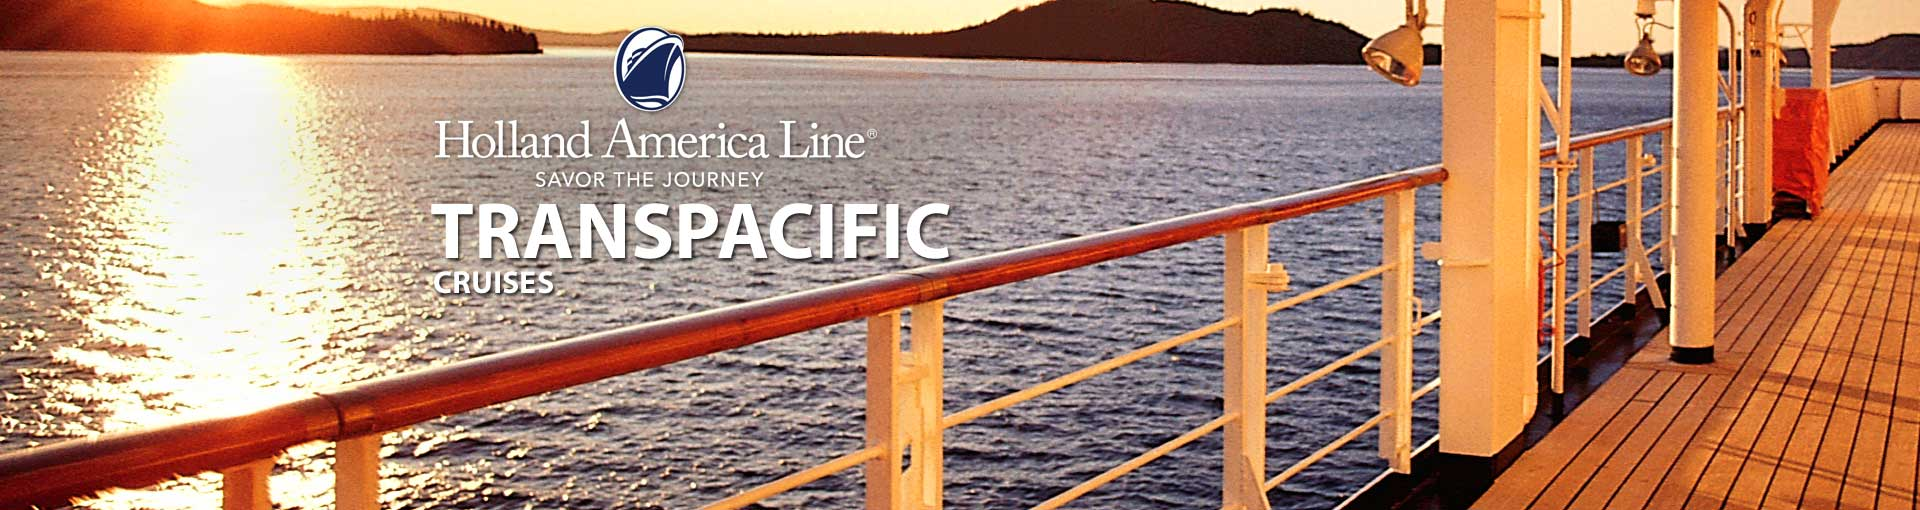 Holland America Transpacific Cruises